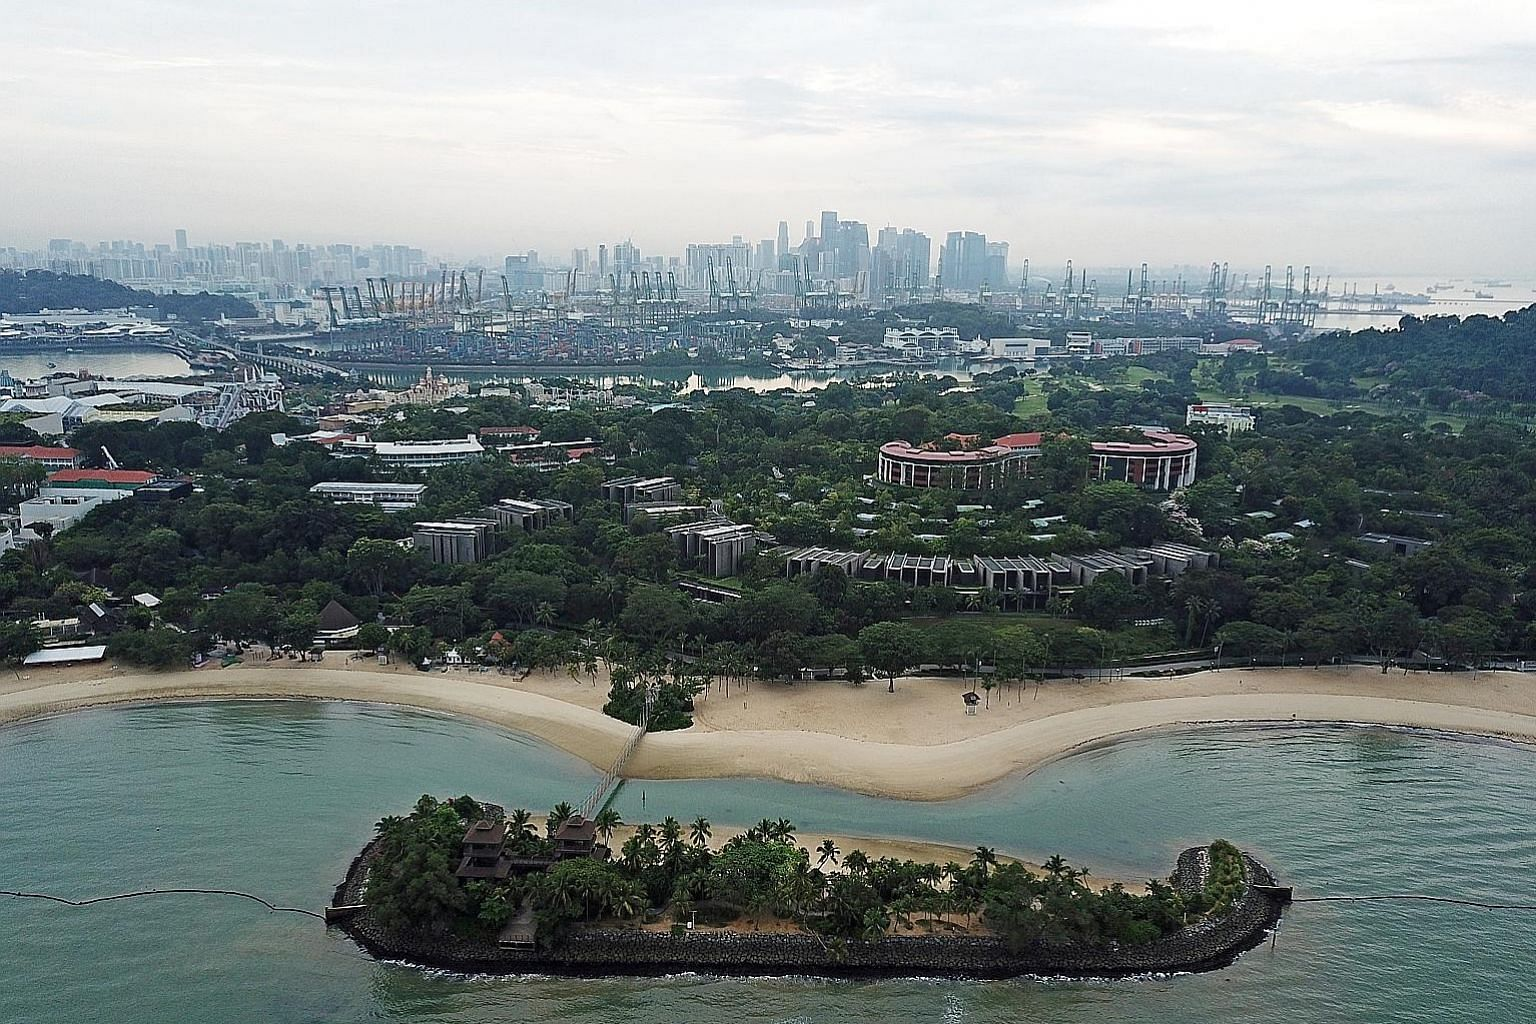 """Palawan Beach in Sentosa is in the foreground. Behind it is the main Sentosa island, while Pulau Brani, where a """"Downtown South"""" resort may be built in the future, can be seen in the background."""